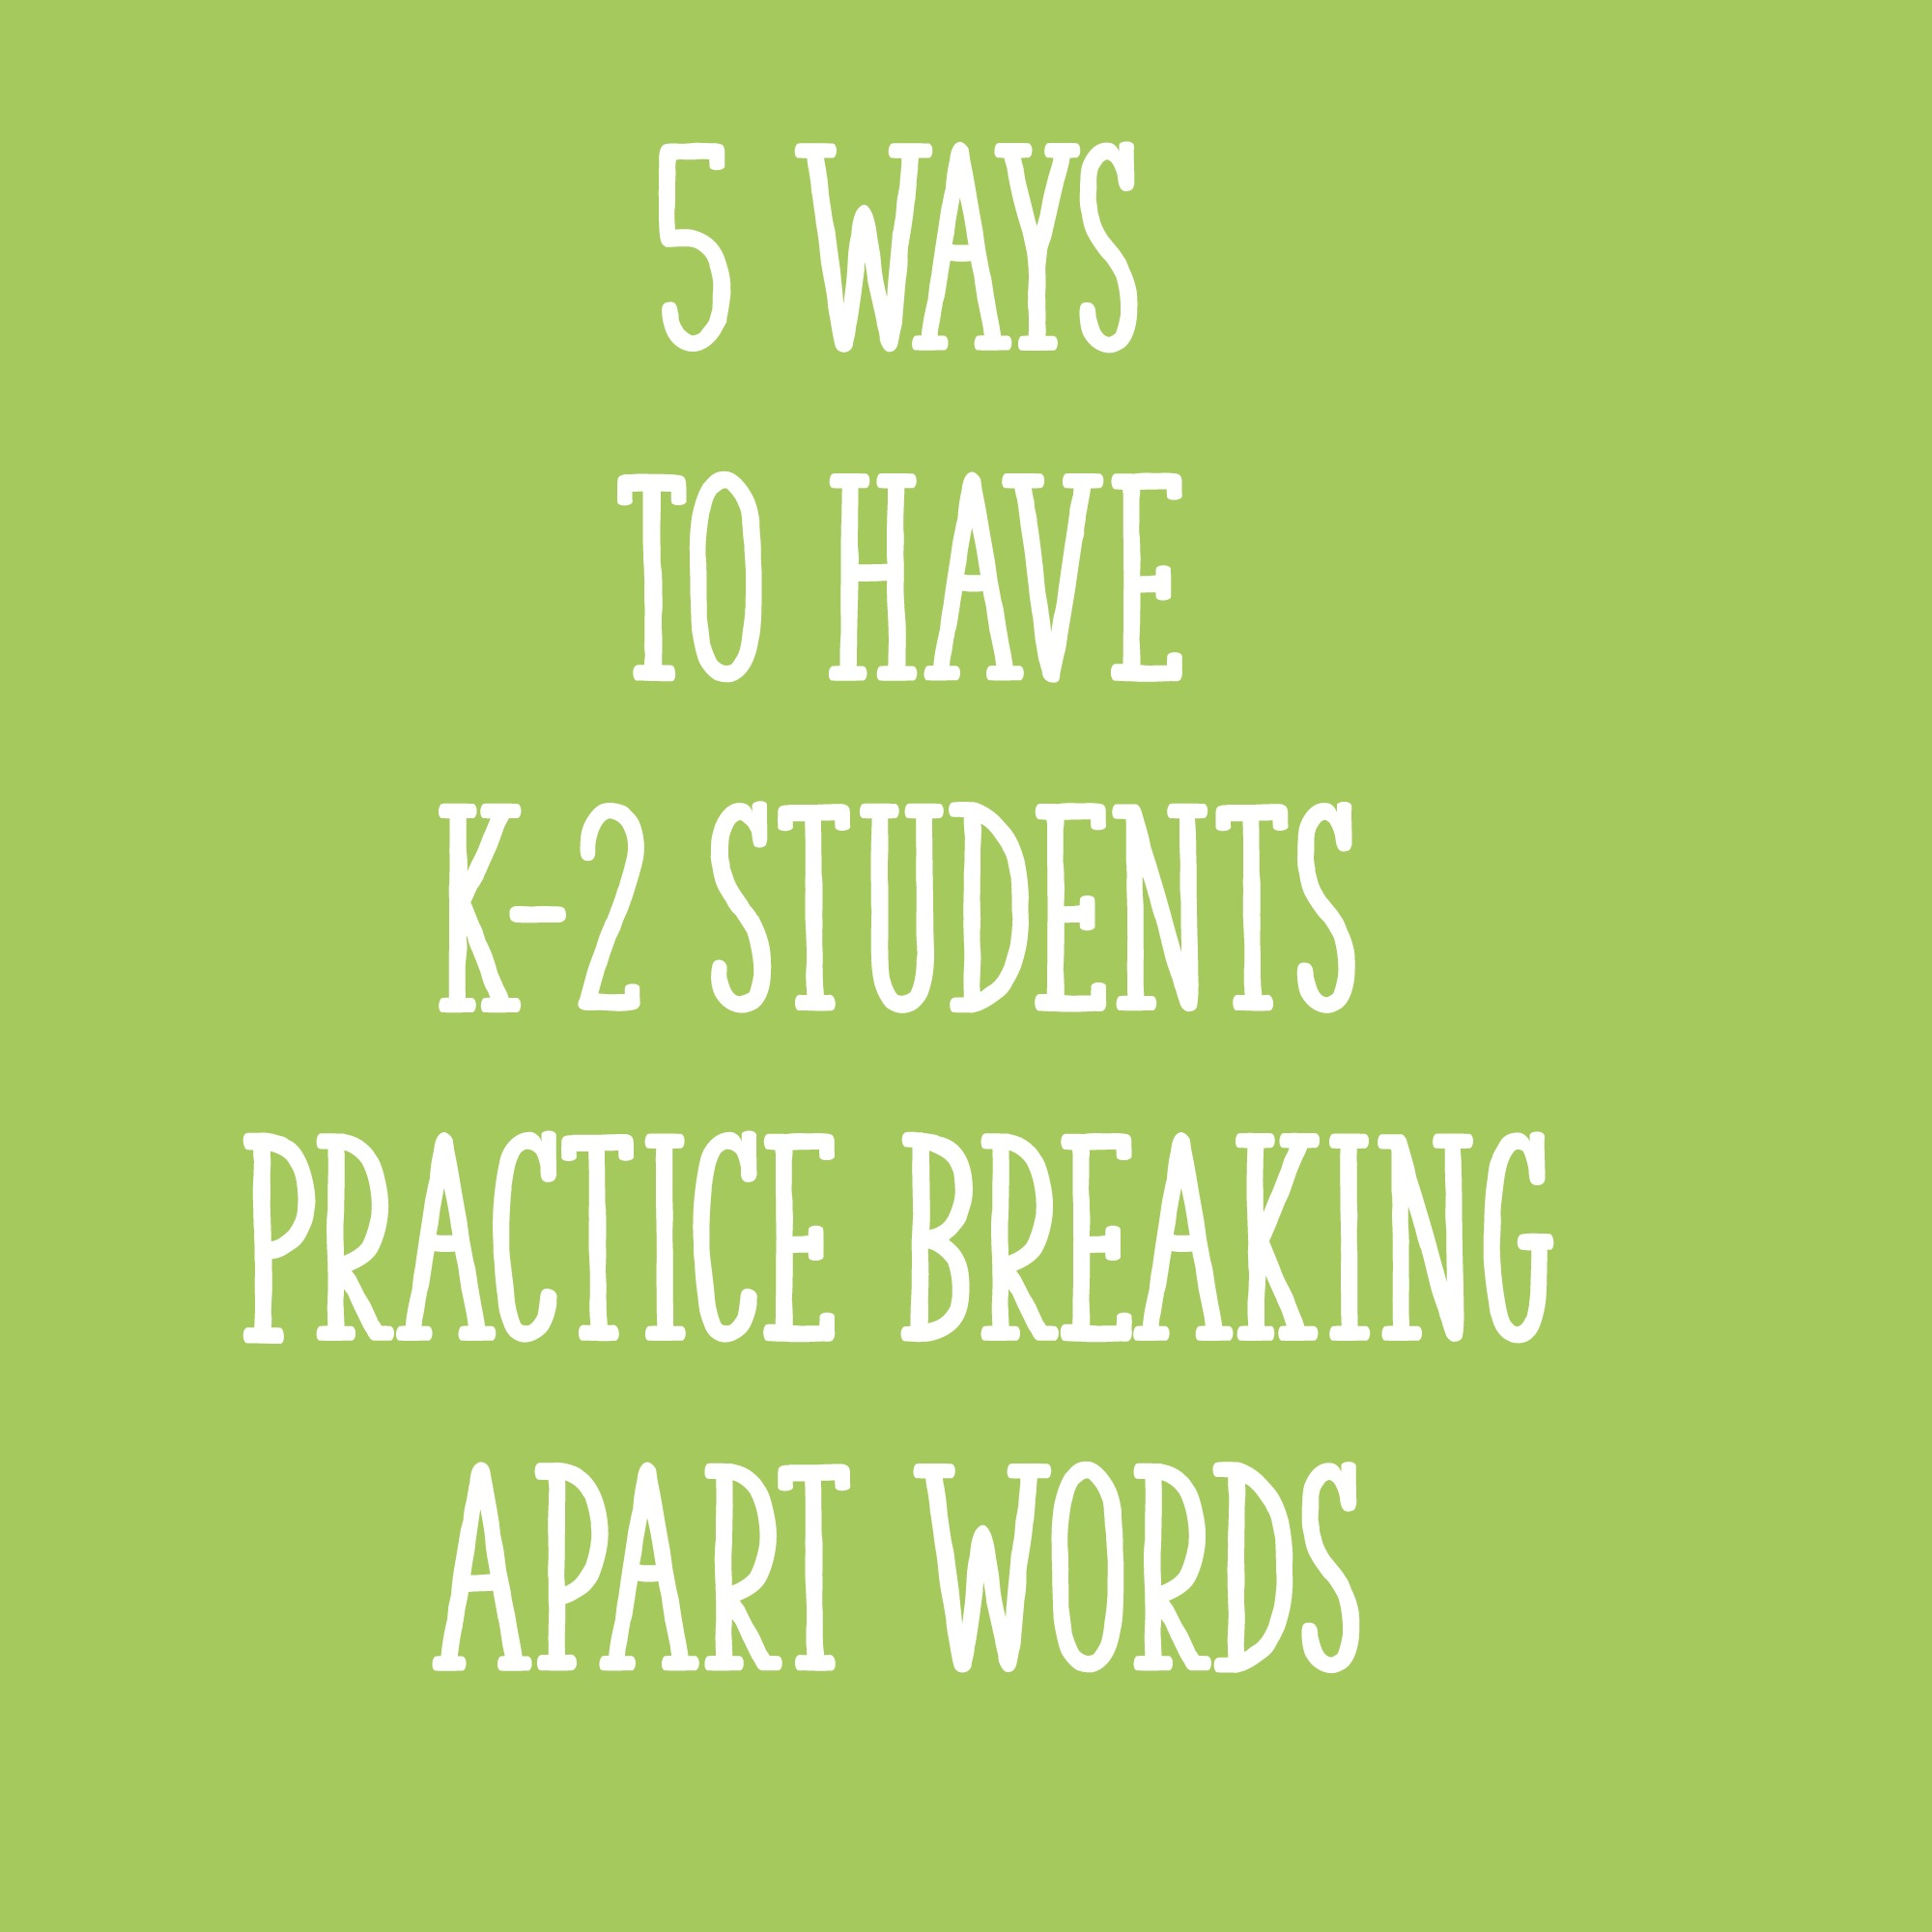 5 Ways To Have K 2 Students Practice Breaking Apart Words